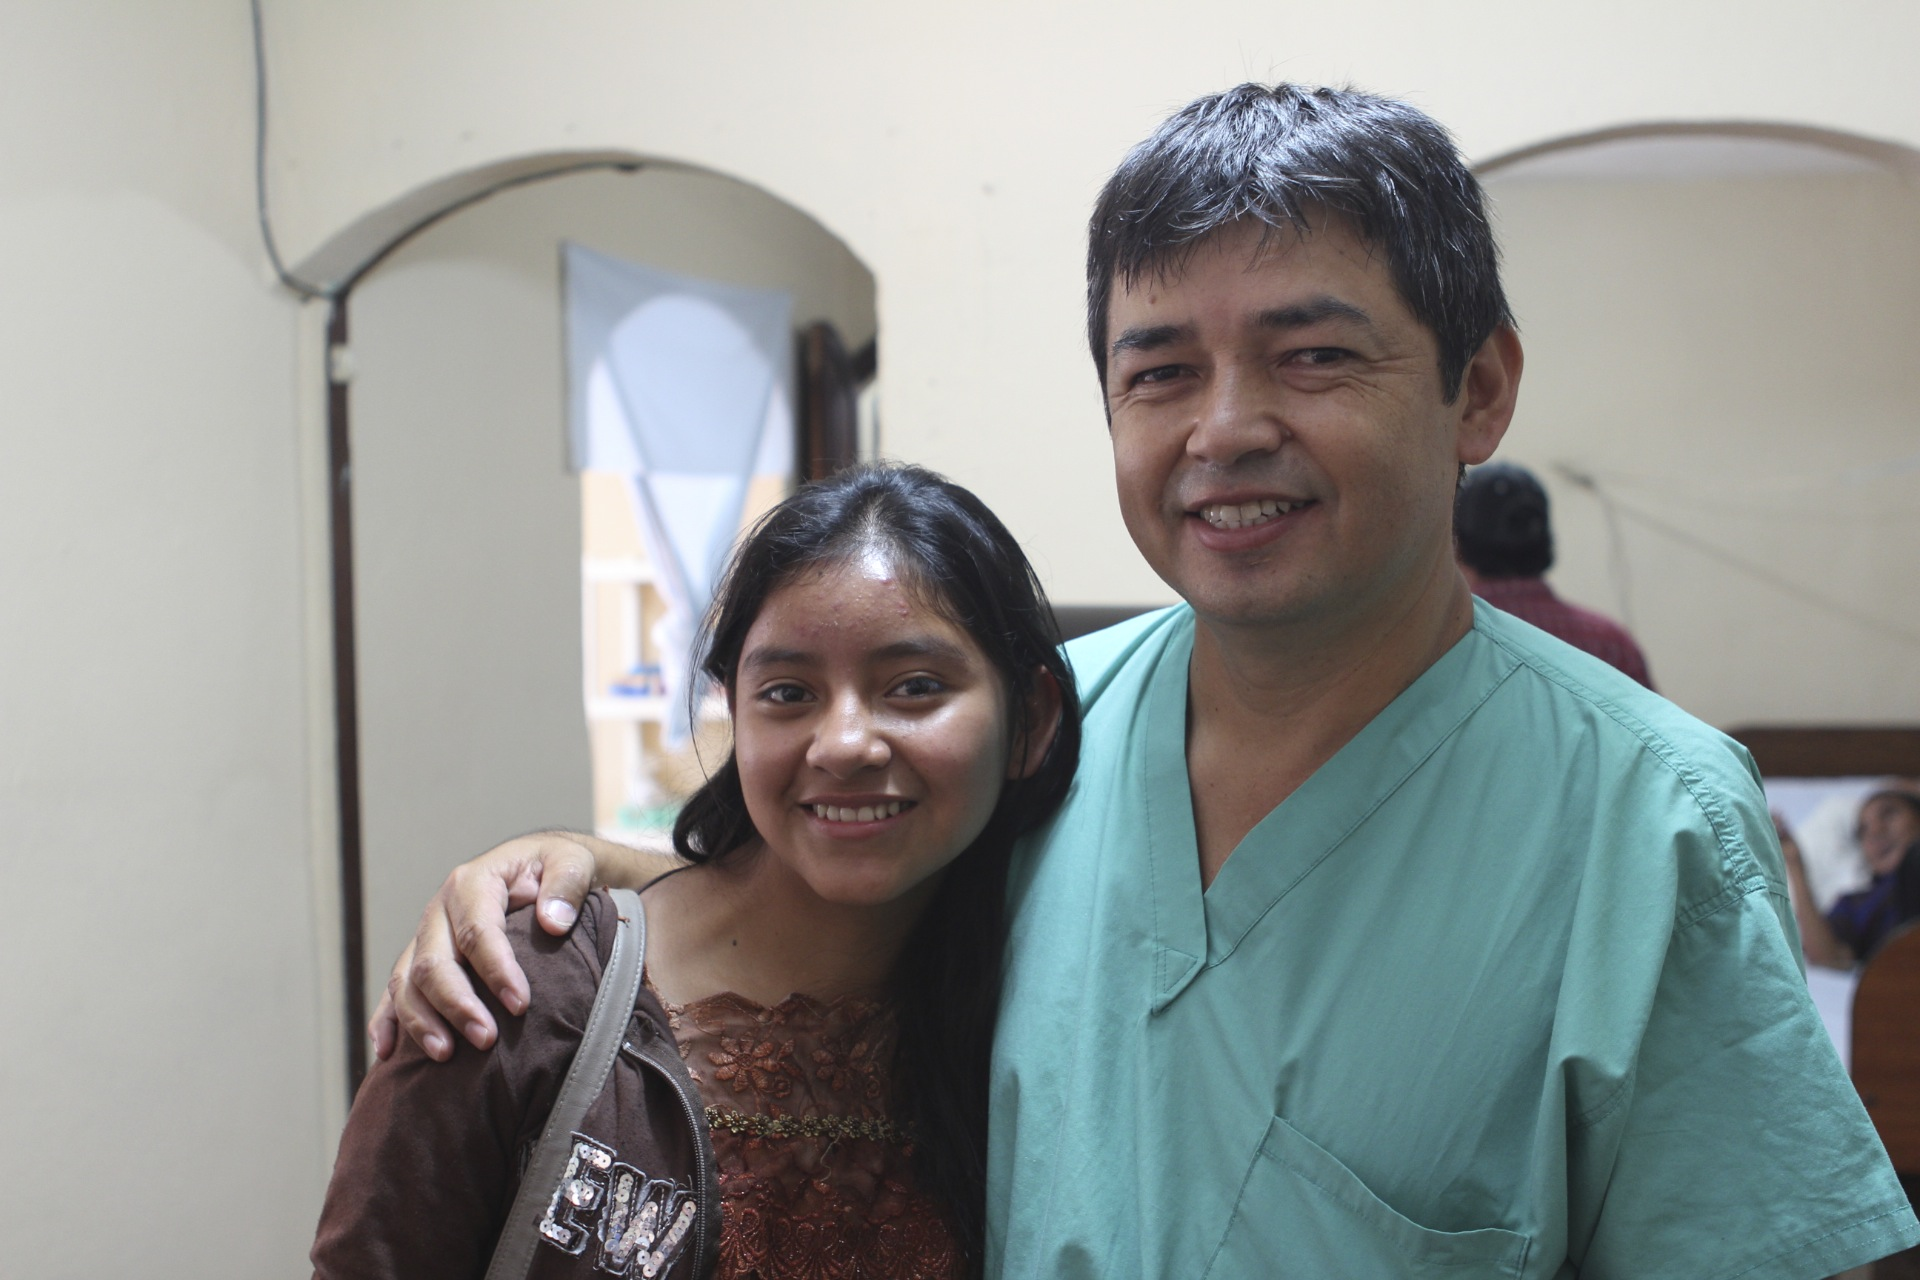 As a local boy who grew up speaking his indigenous language, Dr. Francisco is the role model for our student Lidia, who dreams of becoming a doctor for her village of Buena Vista.